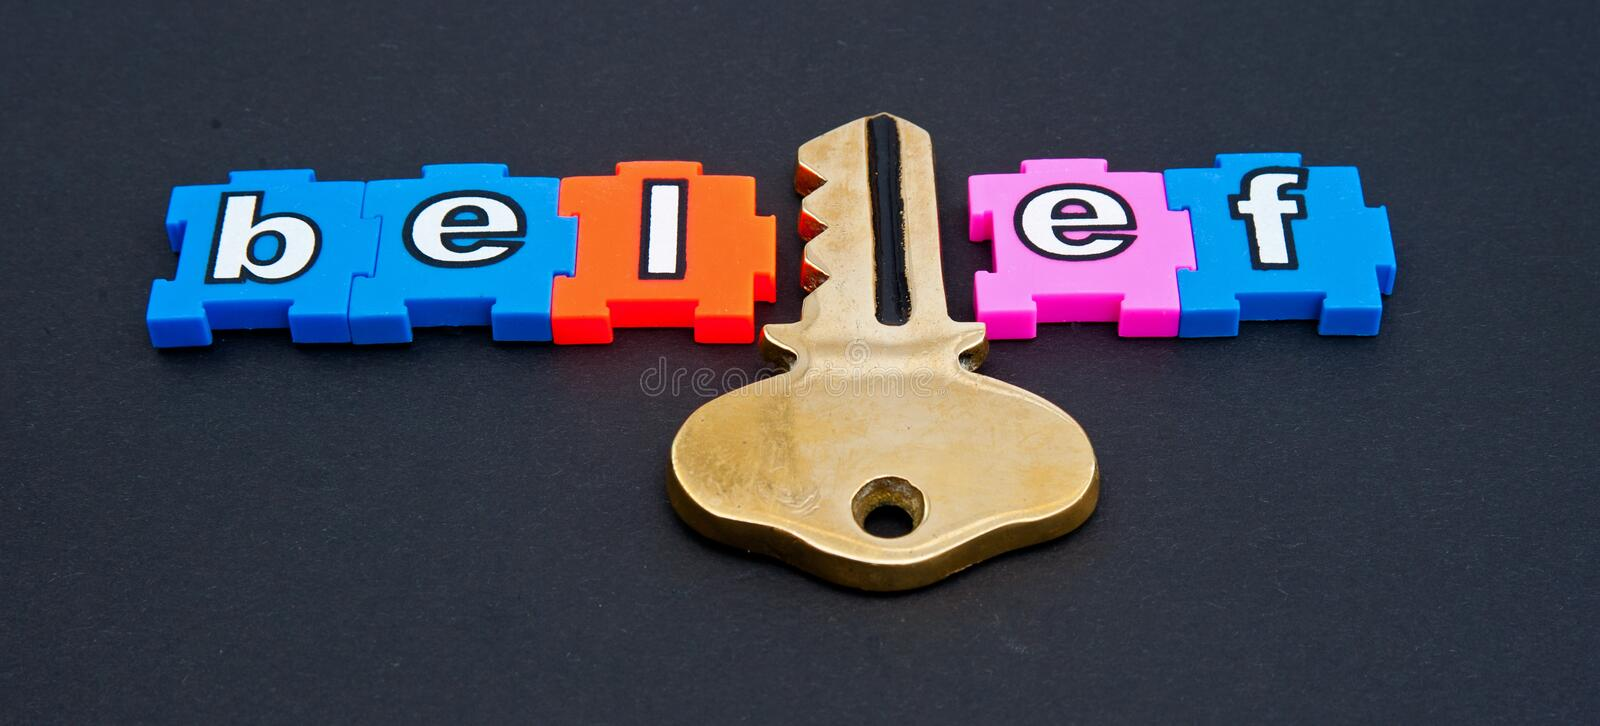 Key to belief. The word belief in colorful jigsaw type lower case letters with the 'i' replaced by a gold key isolated on dark background stock photography